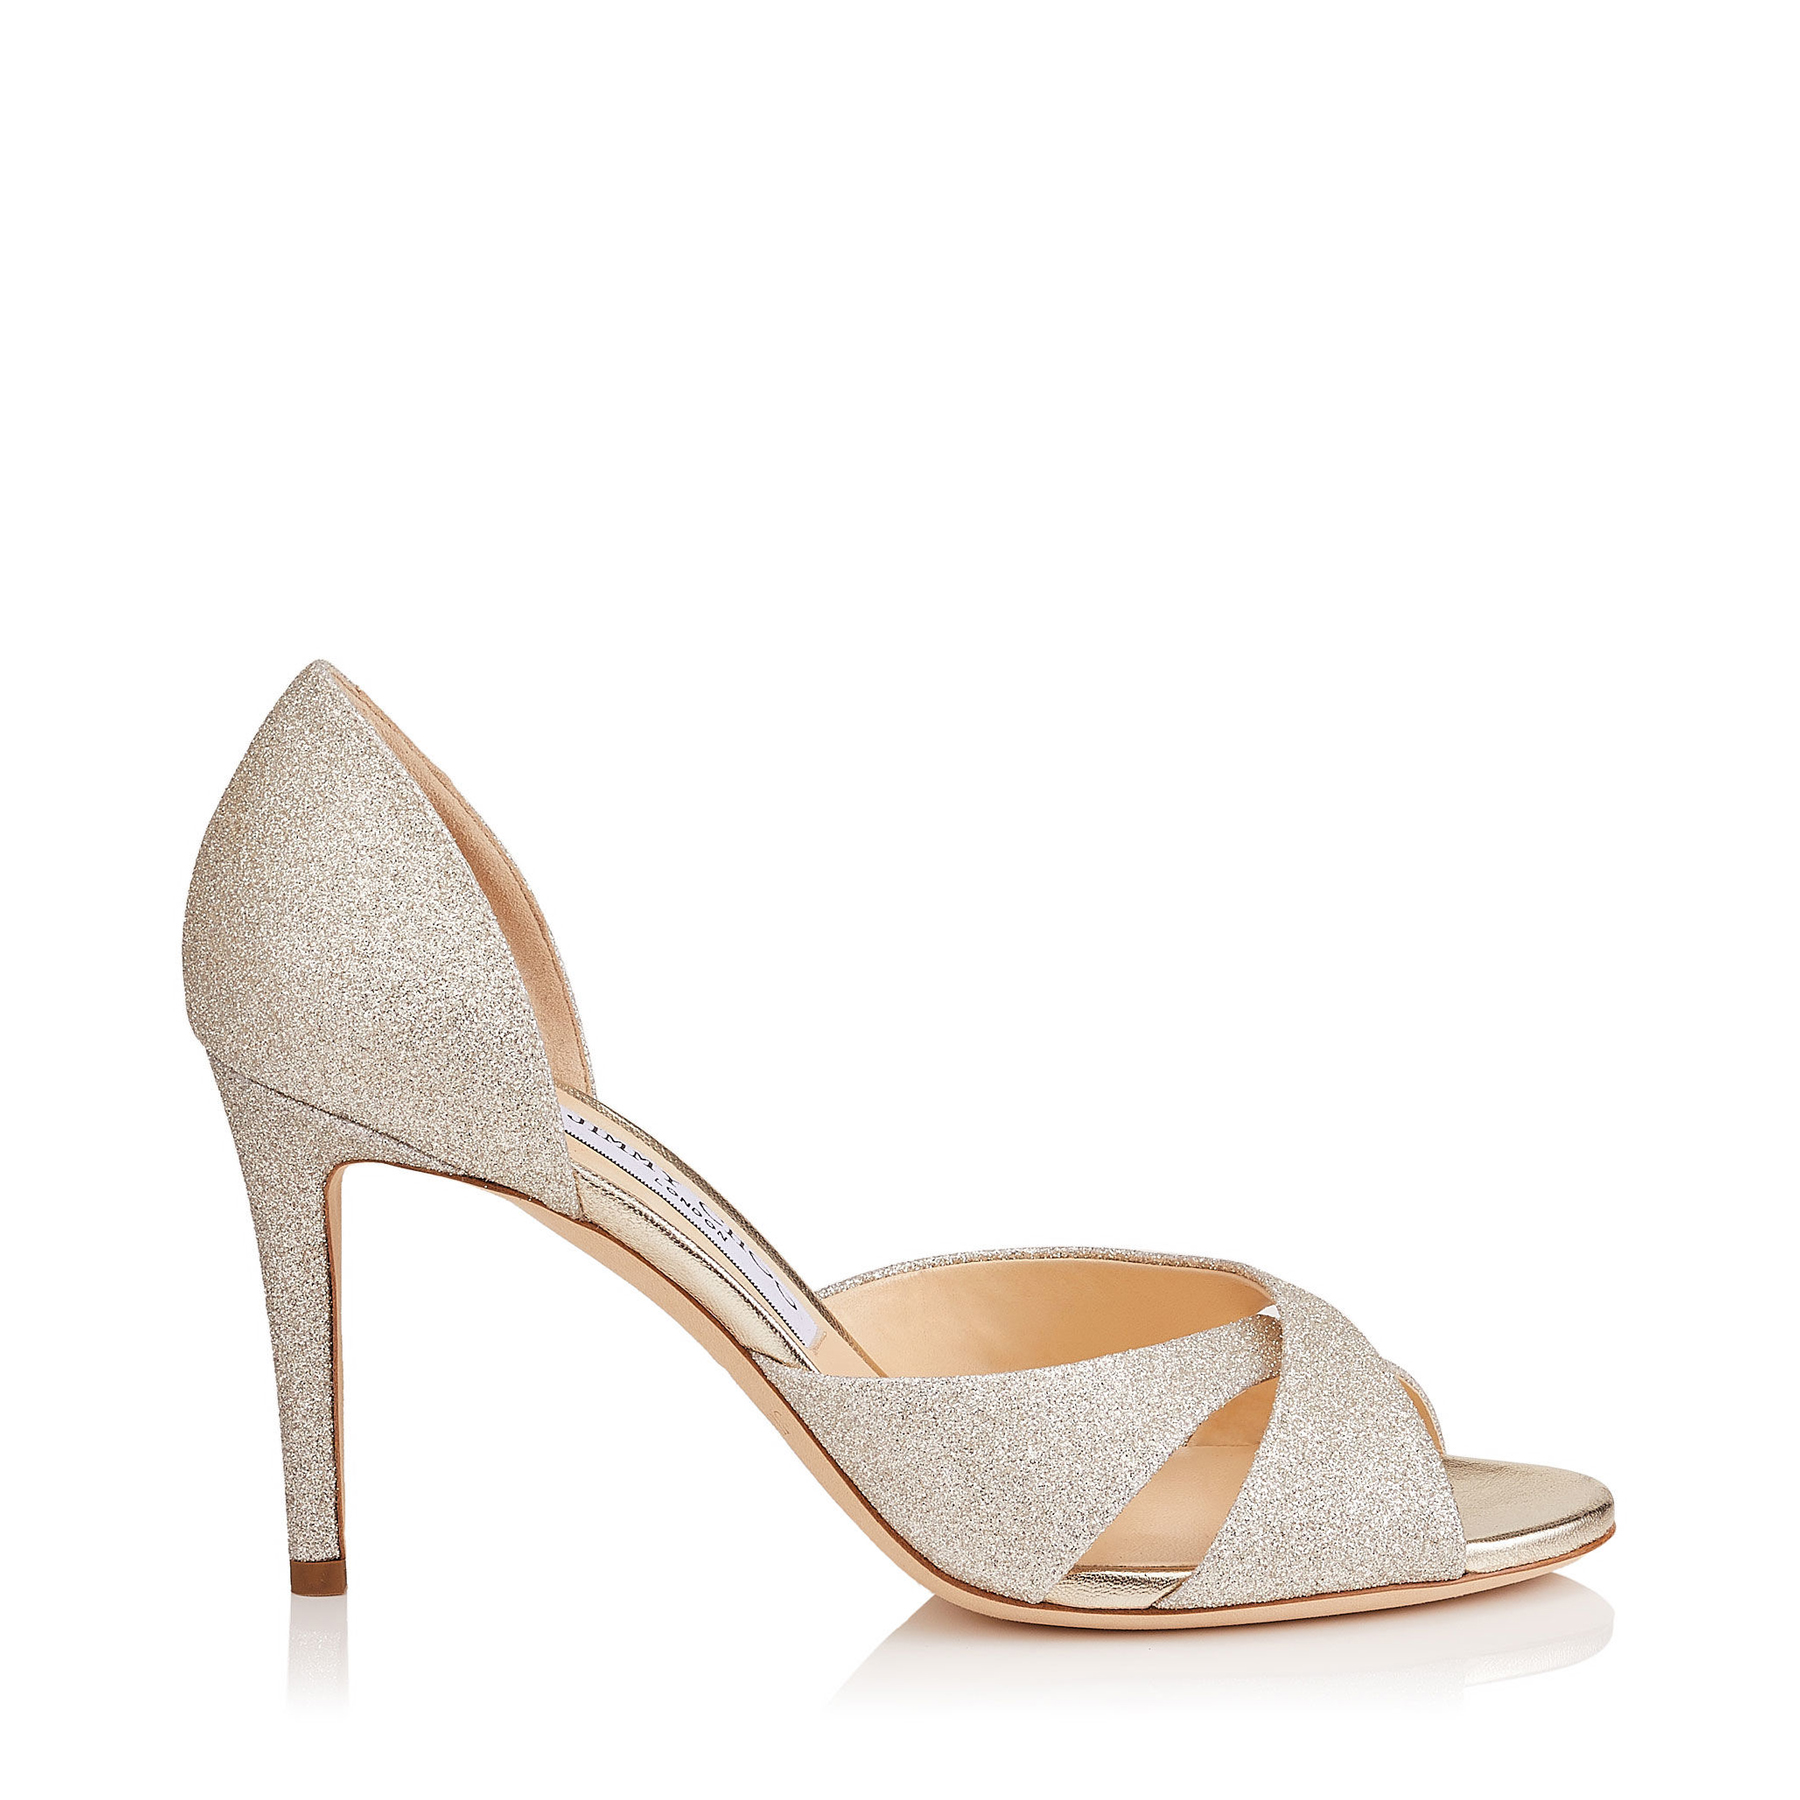 LARA 85 Platinum Ice Dusty Glitter Sandals by Jimmy Choo